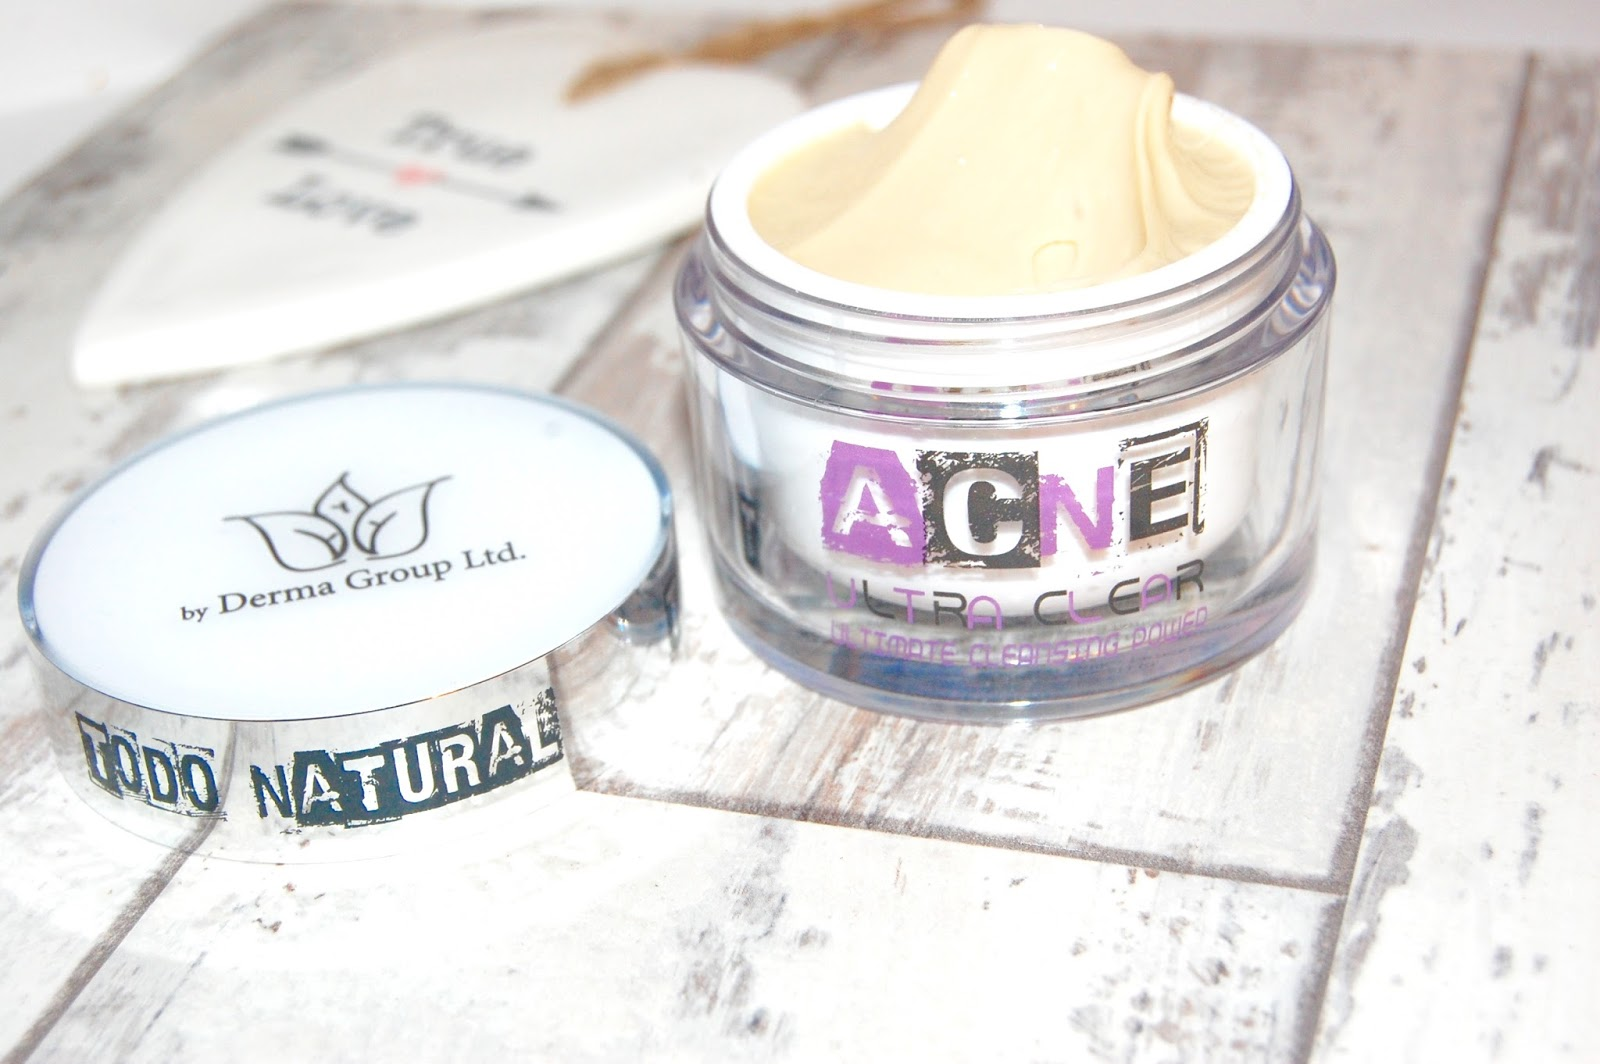 Throughneweyesx - Acne Ultra Clear Moisturiser Skincare